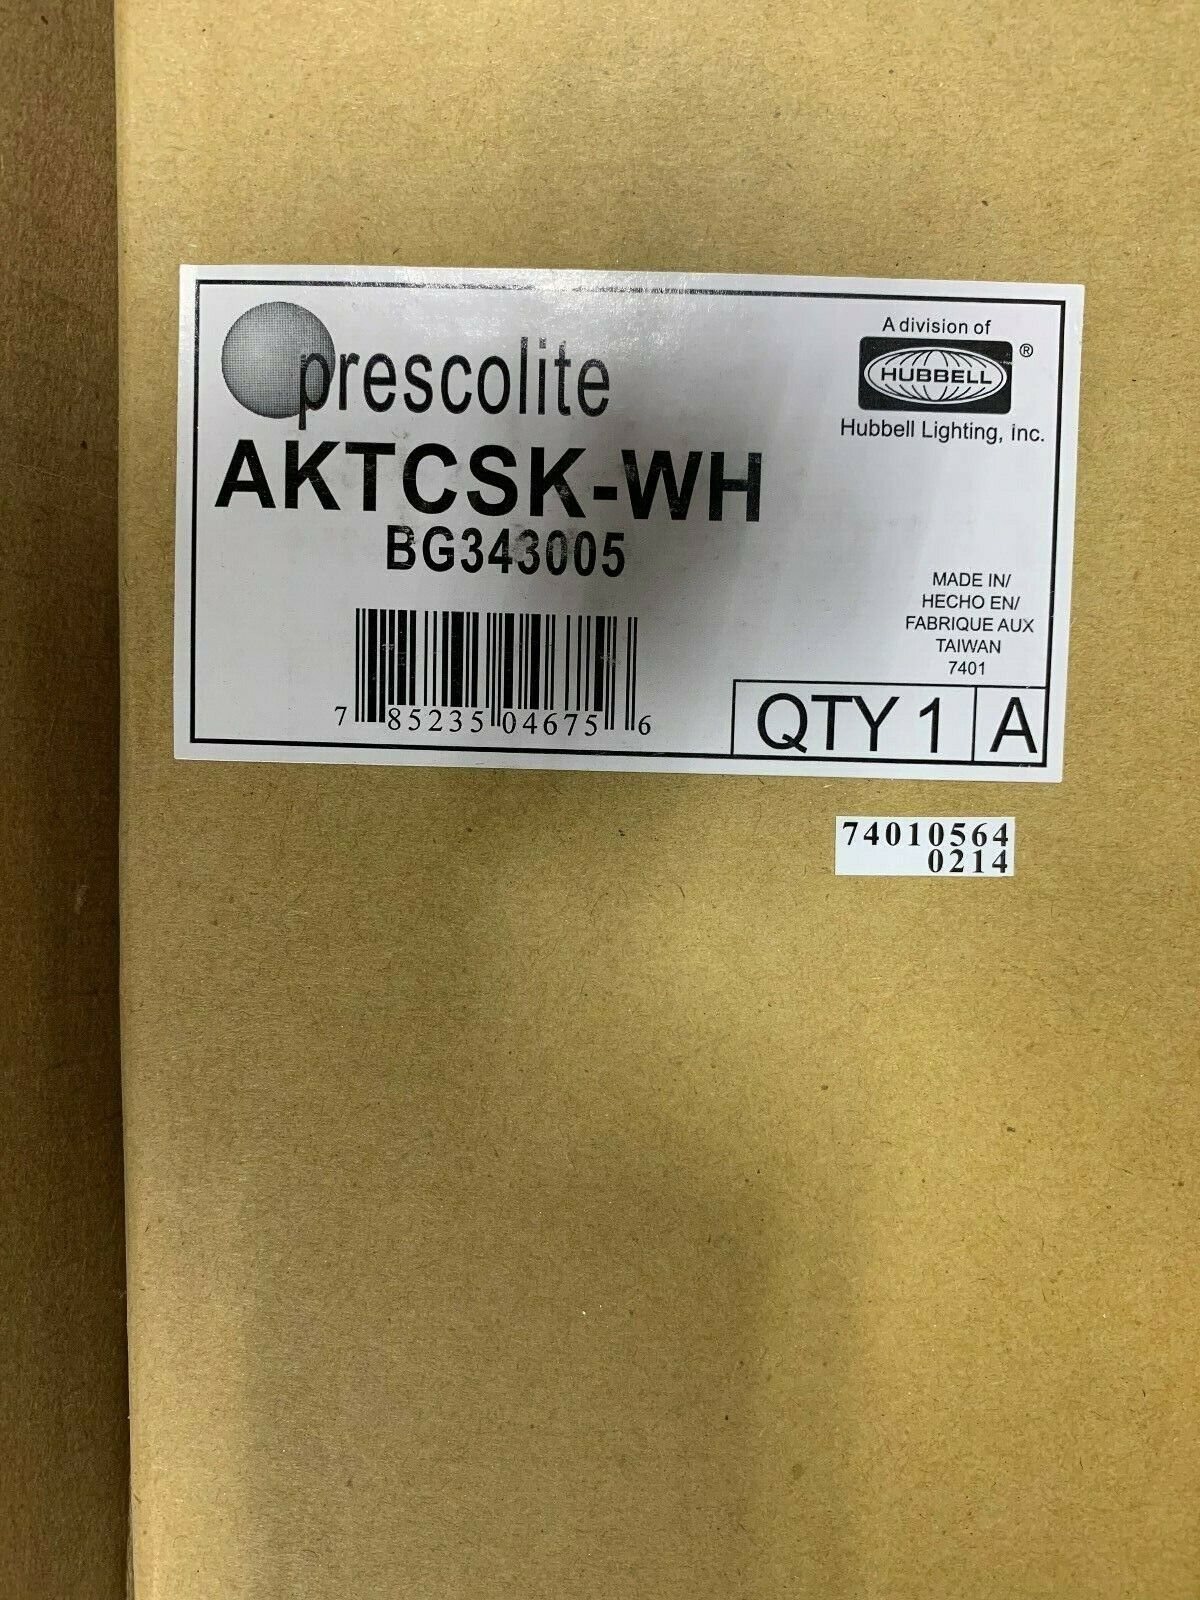 New lot of 2 Prescolite Architrak Live End Connector AKTEF-WH BG328100 Hubbell